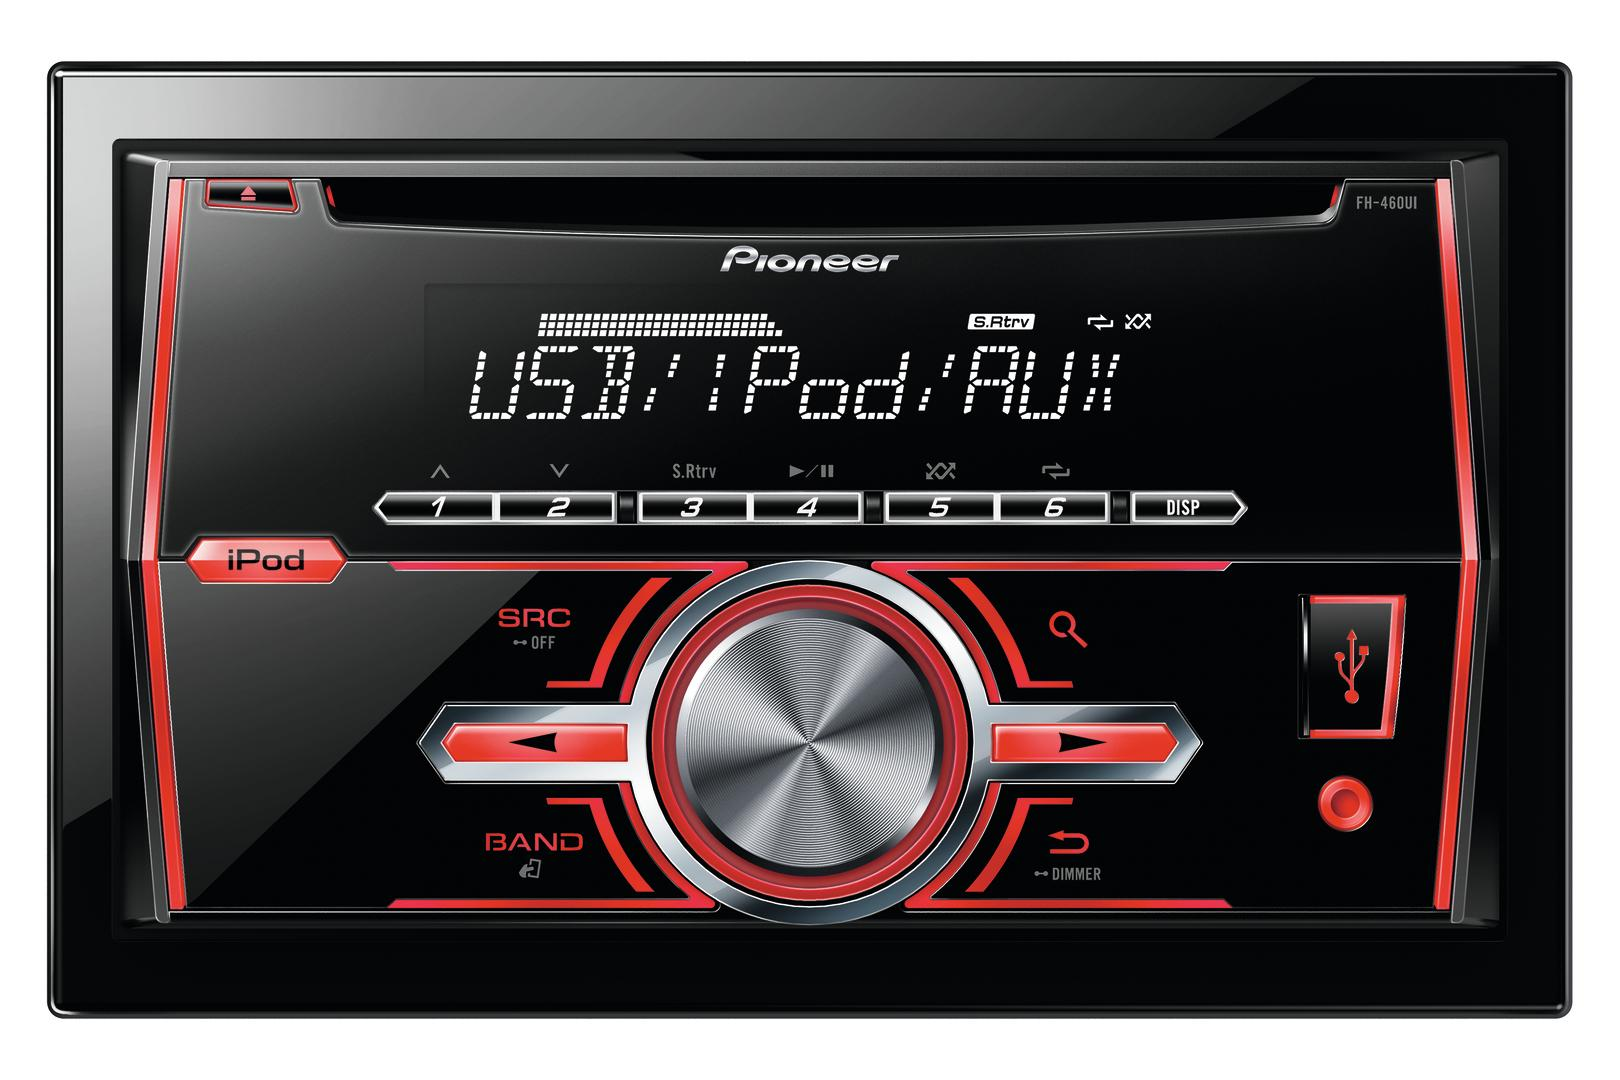 fh 460ui autoradio 2din cd mp3 wma iphone ipod. Black Bedroom Furniture Sets. Home Design Ideas